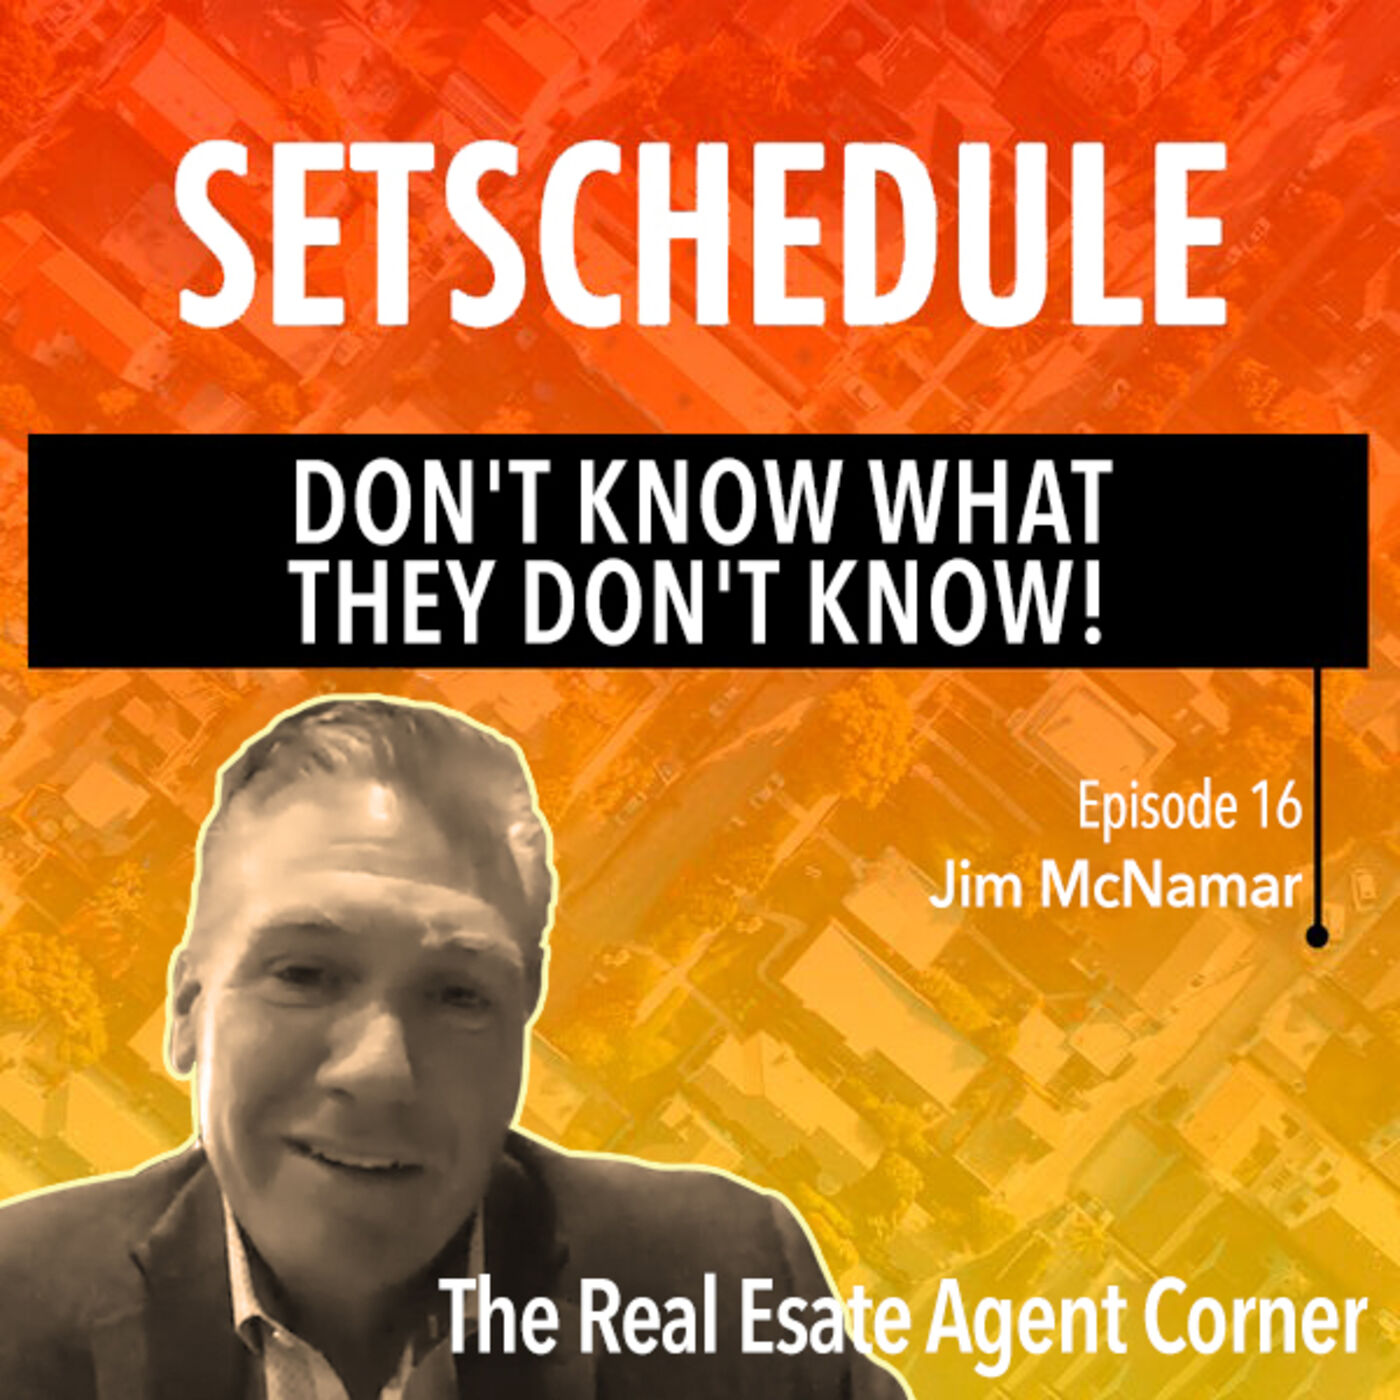 What happens when an offer does come in? - Jim McNamara